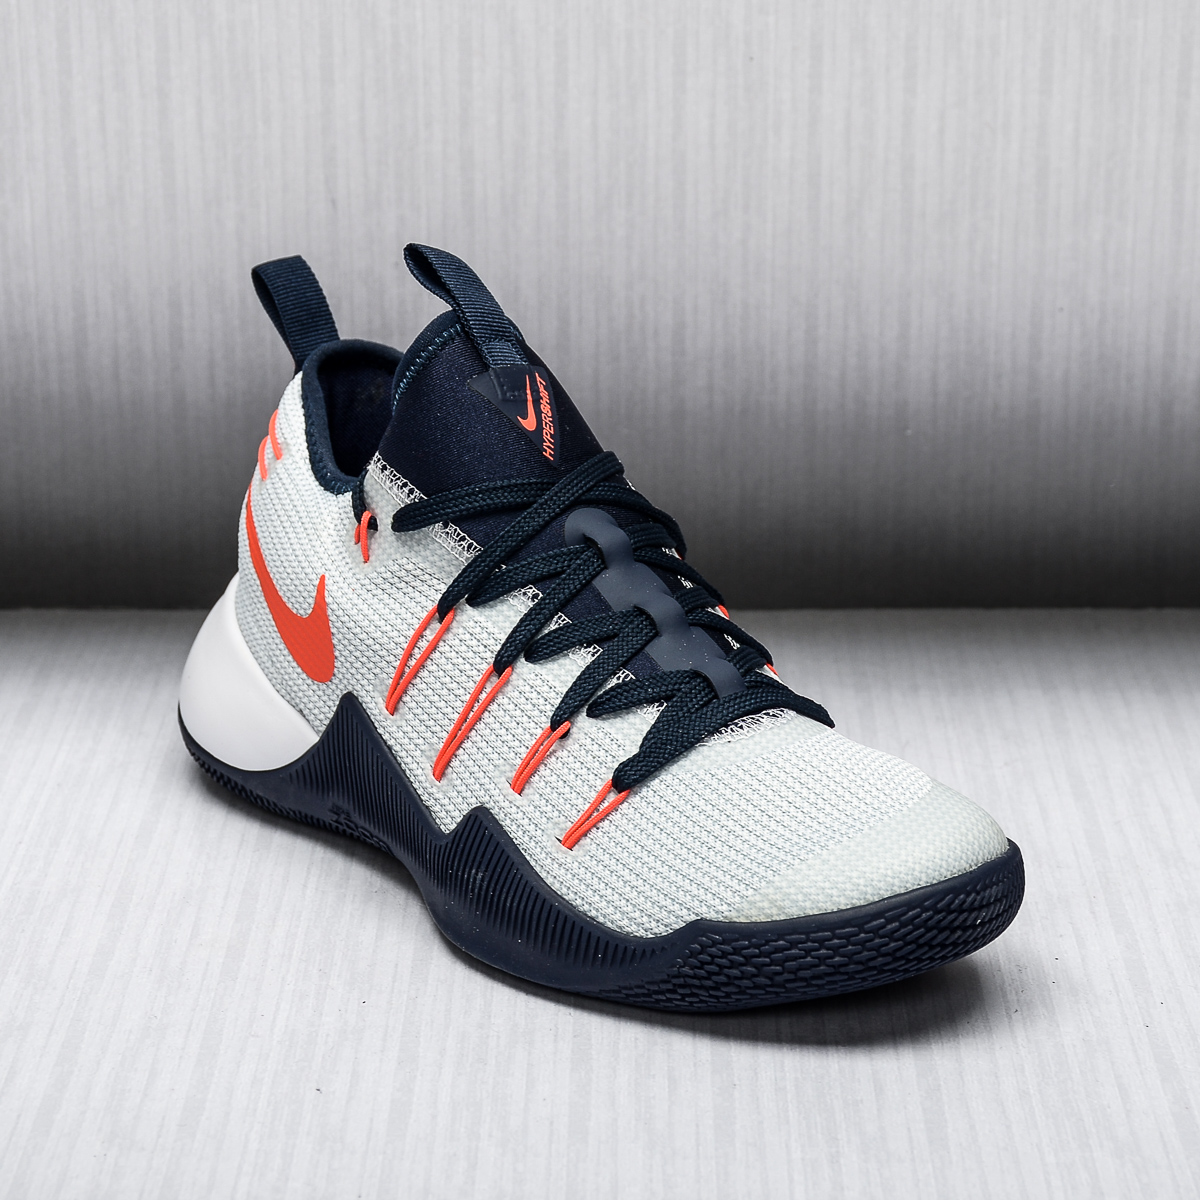 Nike Hypershift USA Basketball Shoes - BASKETBALL SHOES ...